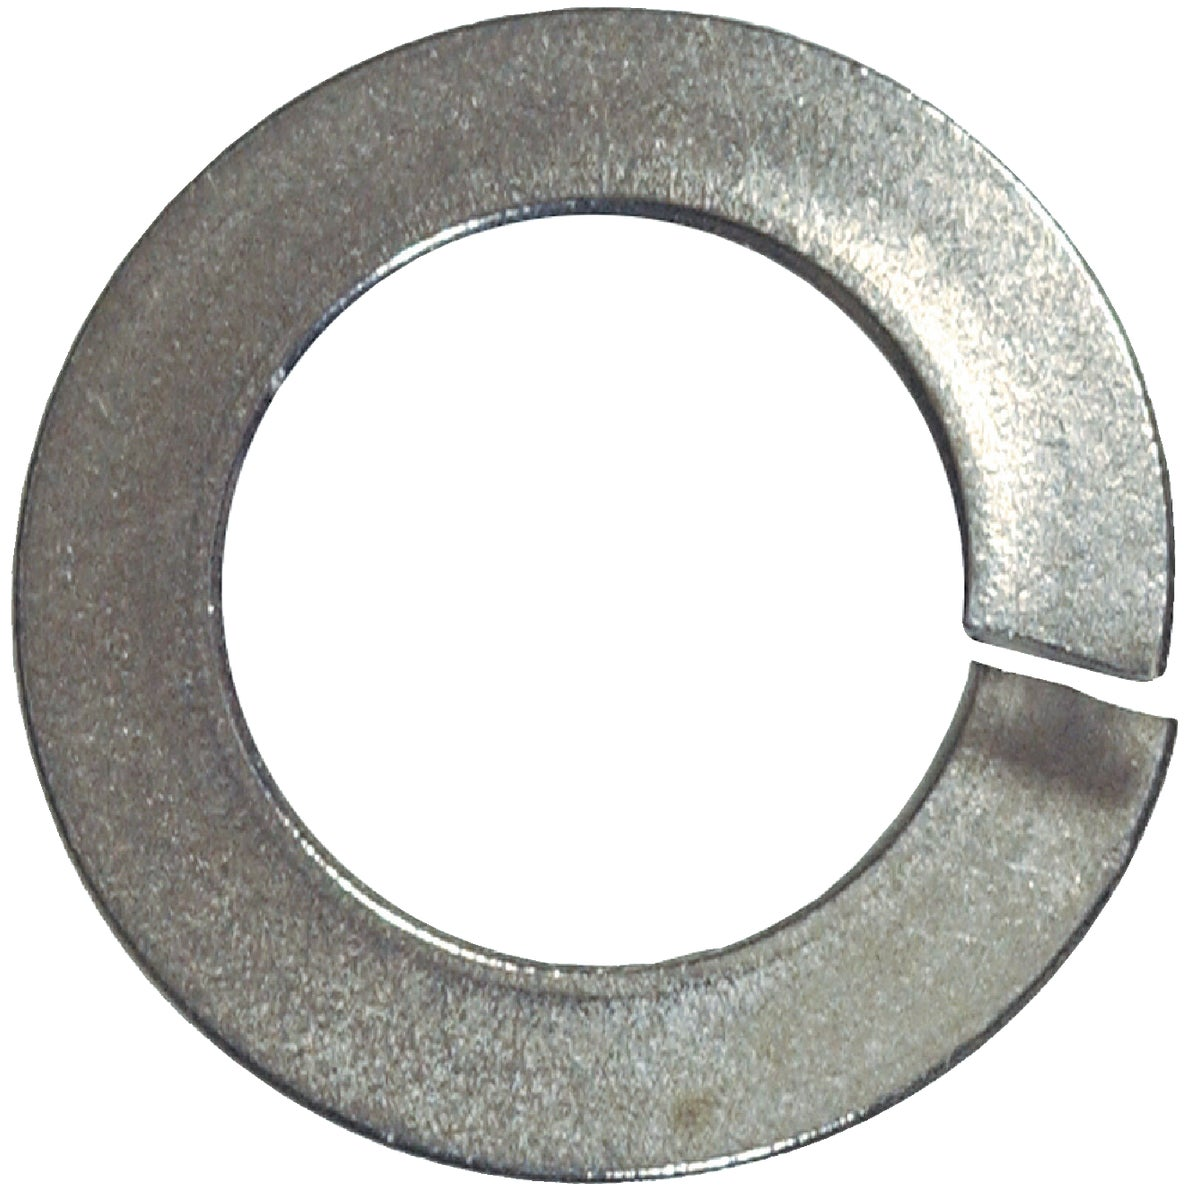 "1/4""SS SPLIT LOCK WASHER - 830666 by Hillman Fastener"